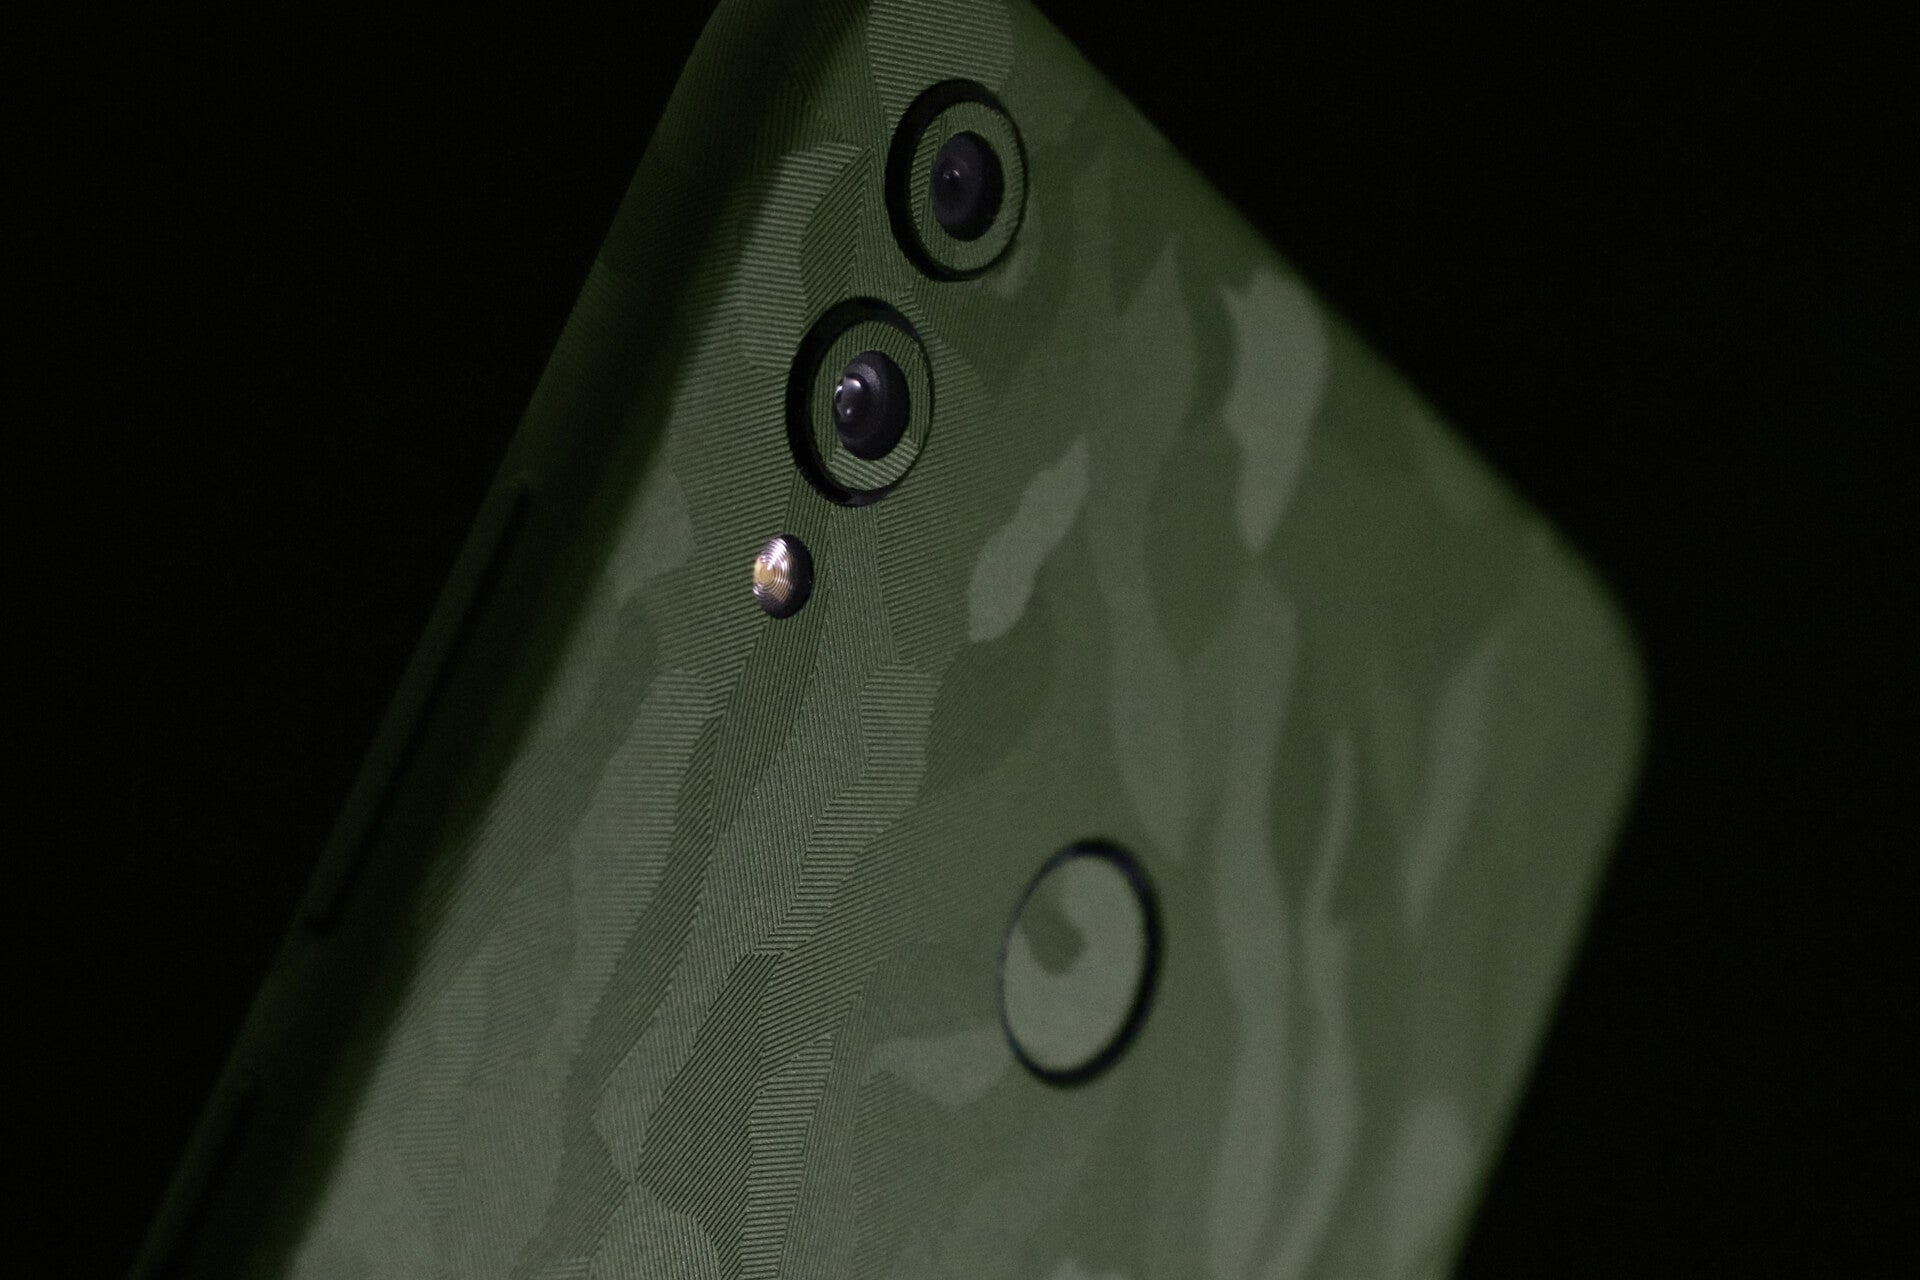 Honor 8X Green Camo Skins